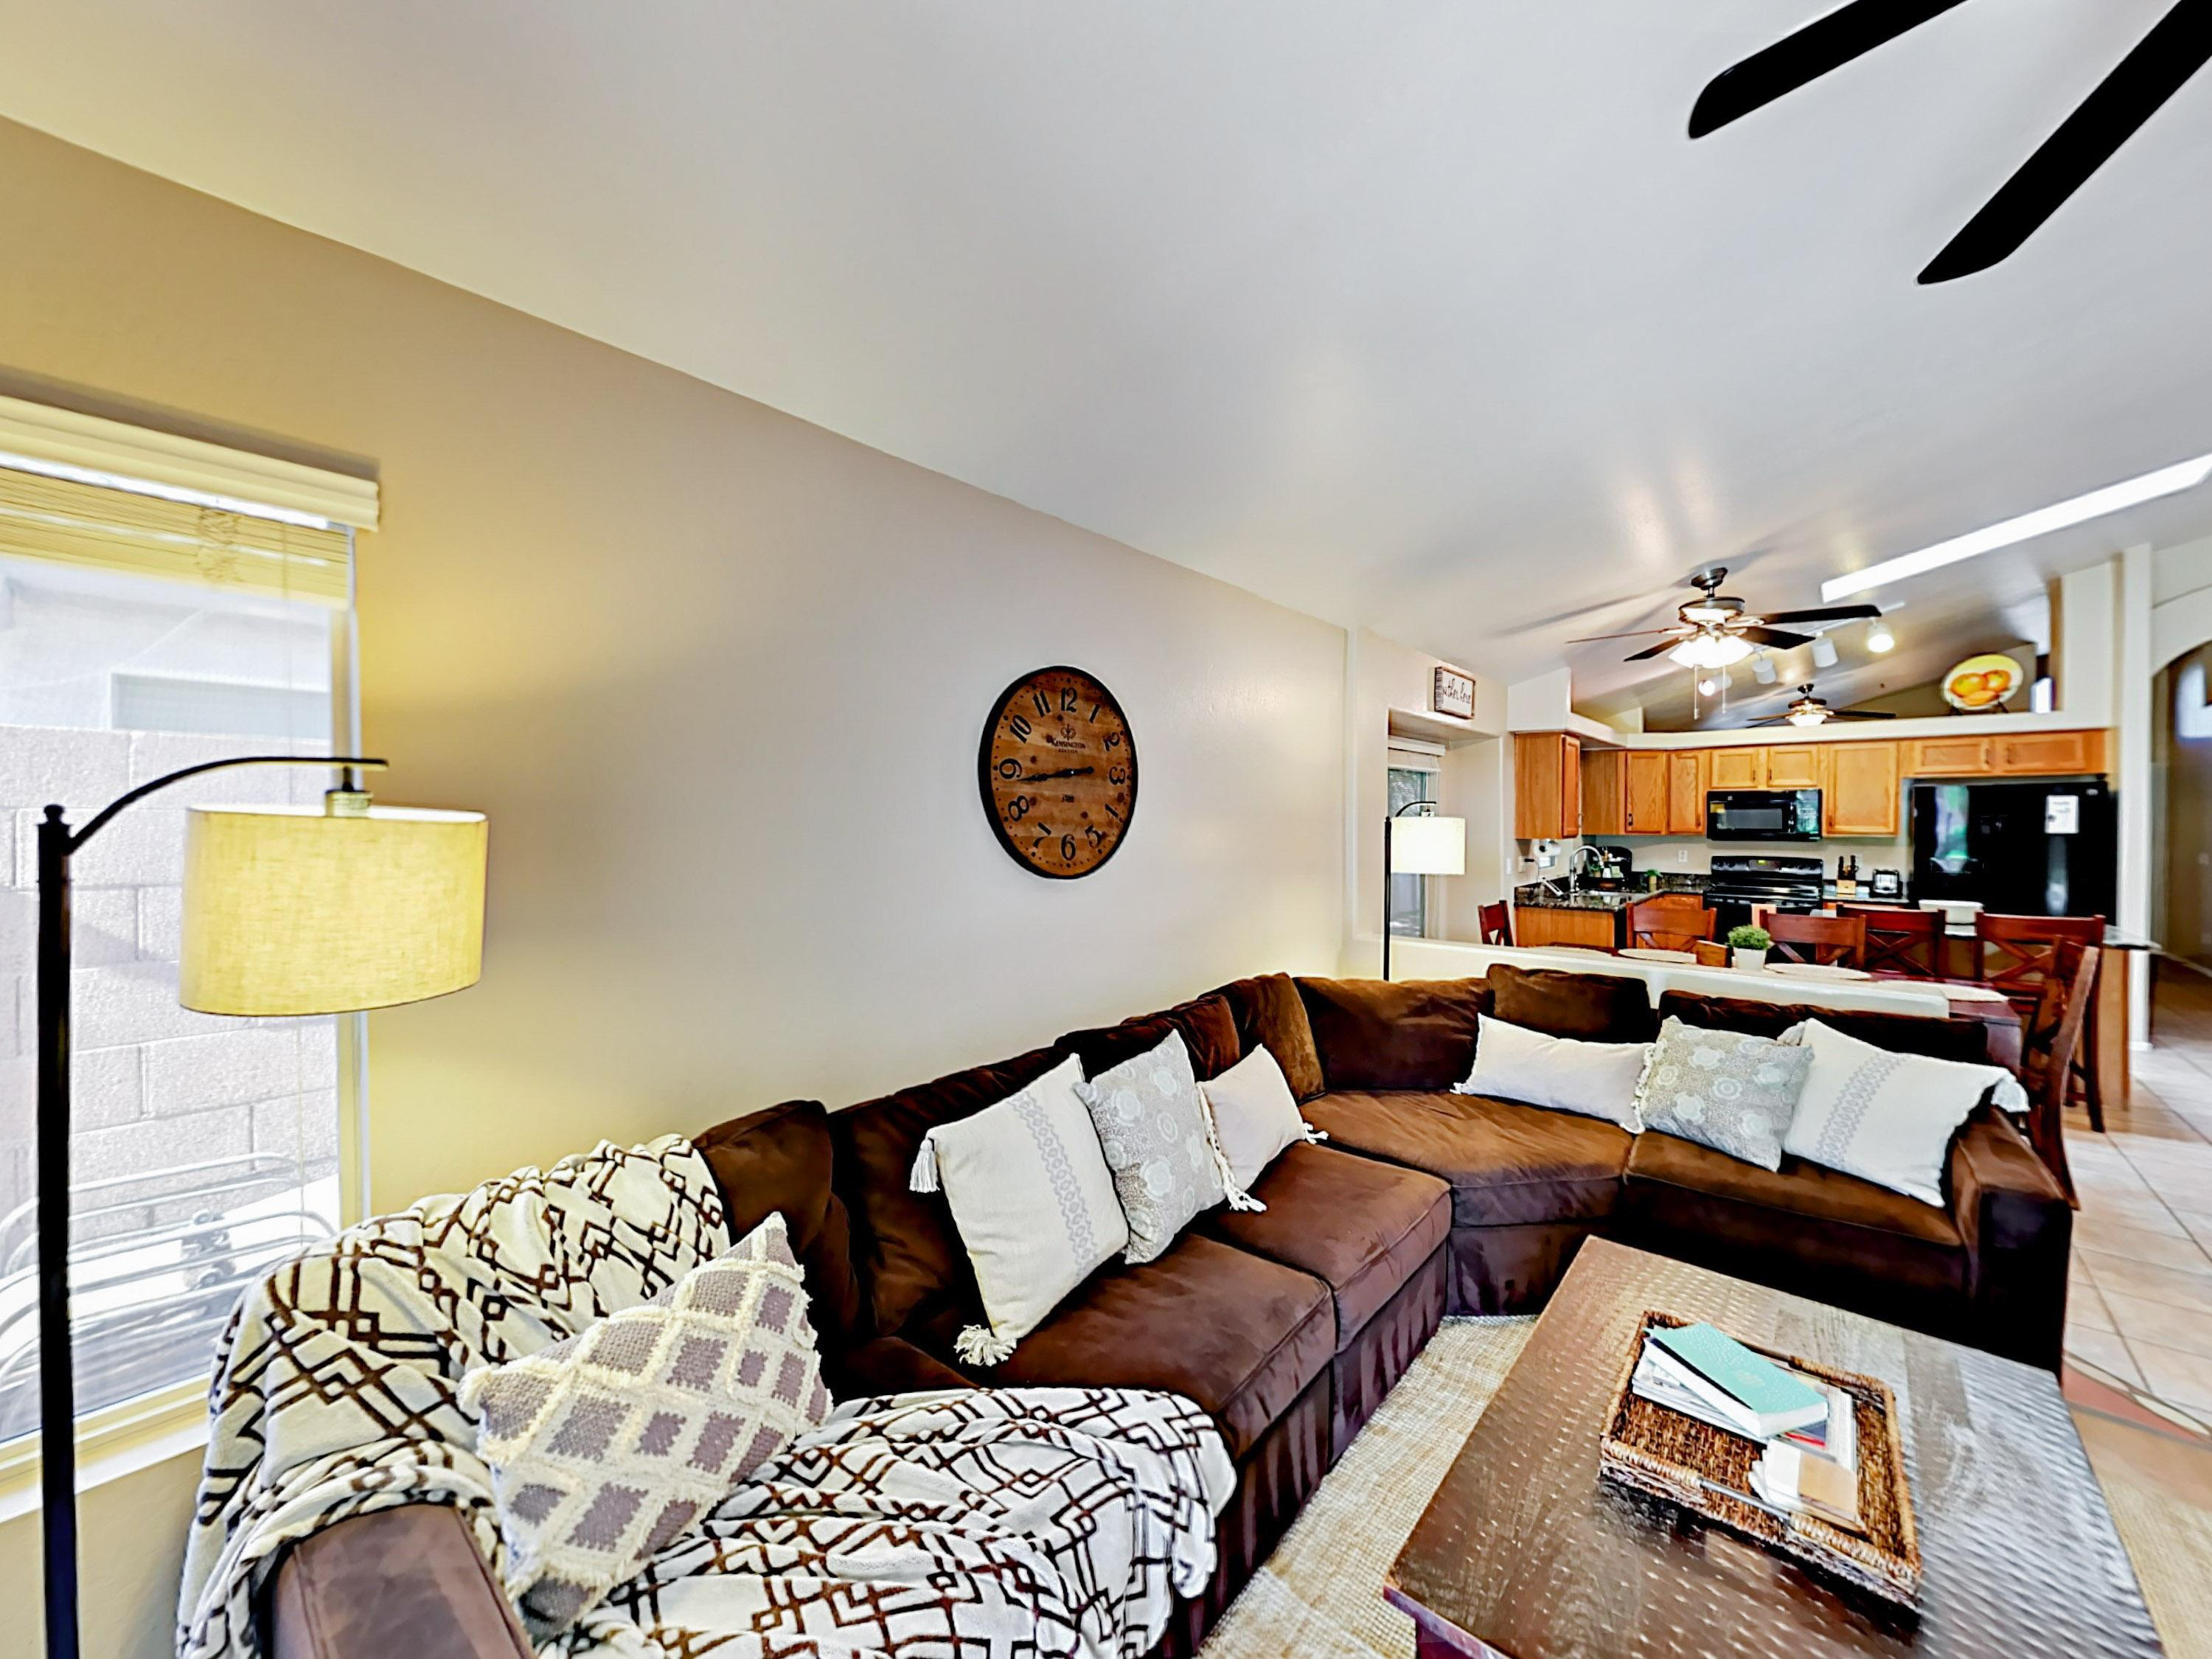 A plush sectional sofa offers comfy seating in the main living area.